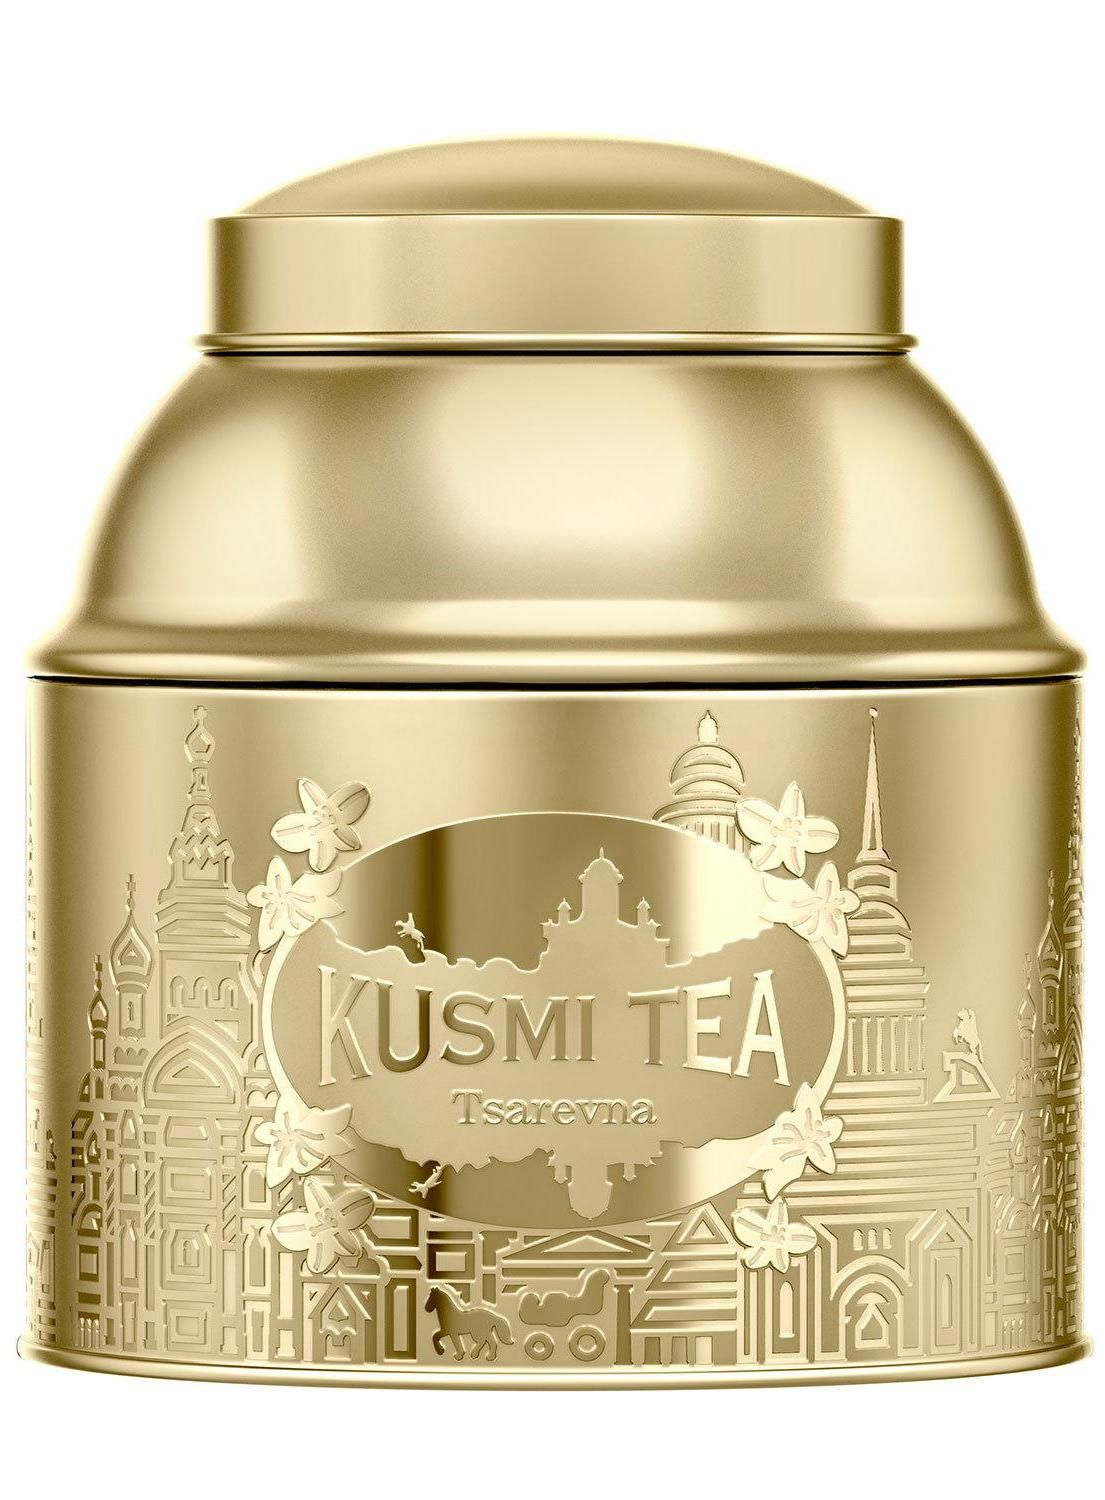 hbz-kusmi-tea-stocking-1509043814.jpg (980×1330)